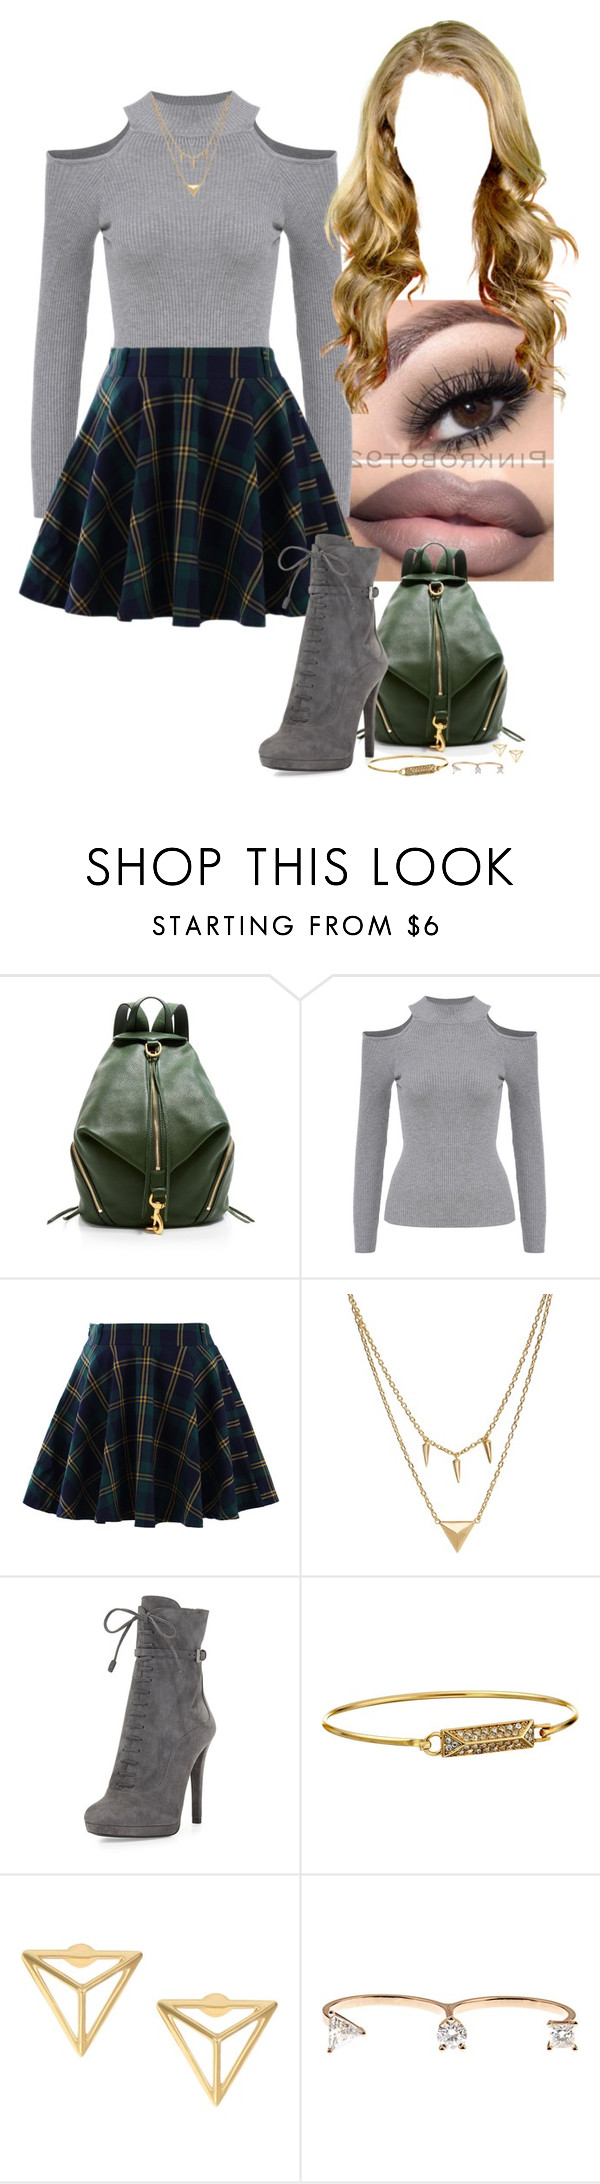 """""""Untitled #279"""" by captainsassy92 ❤ liked on Polyvore featuring Malaika, Rebecca Minkoff, Chicwish, Edge of Ember, Prada, Delfina Delettrez, women's clothing, women's fashion, women and female"""